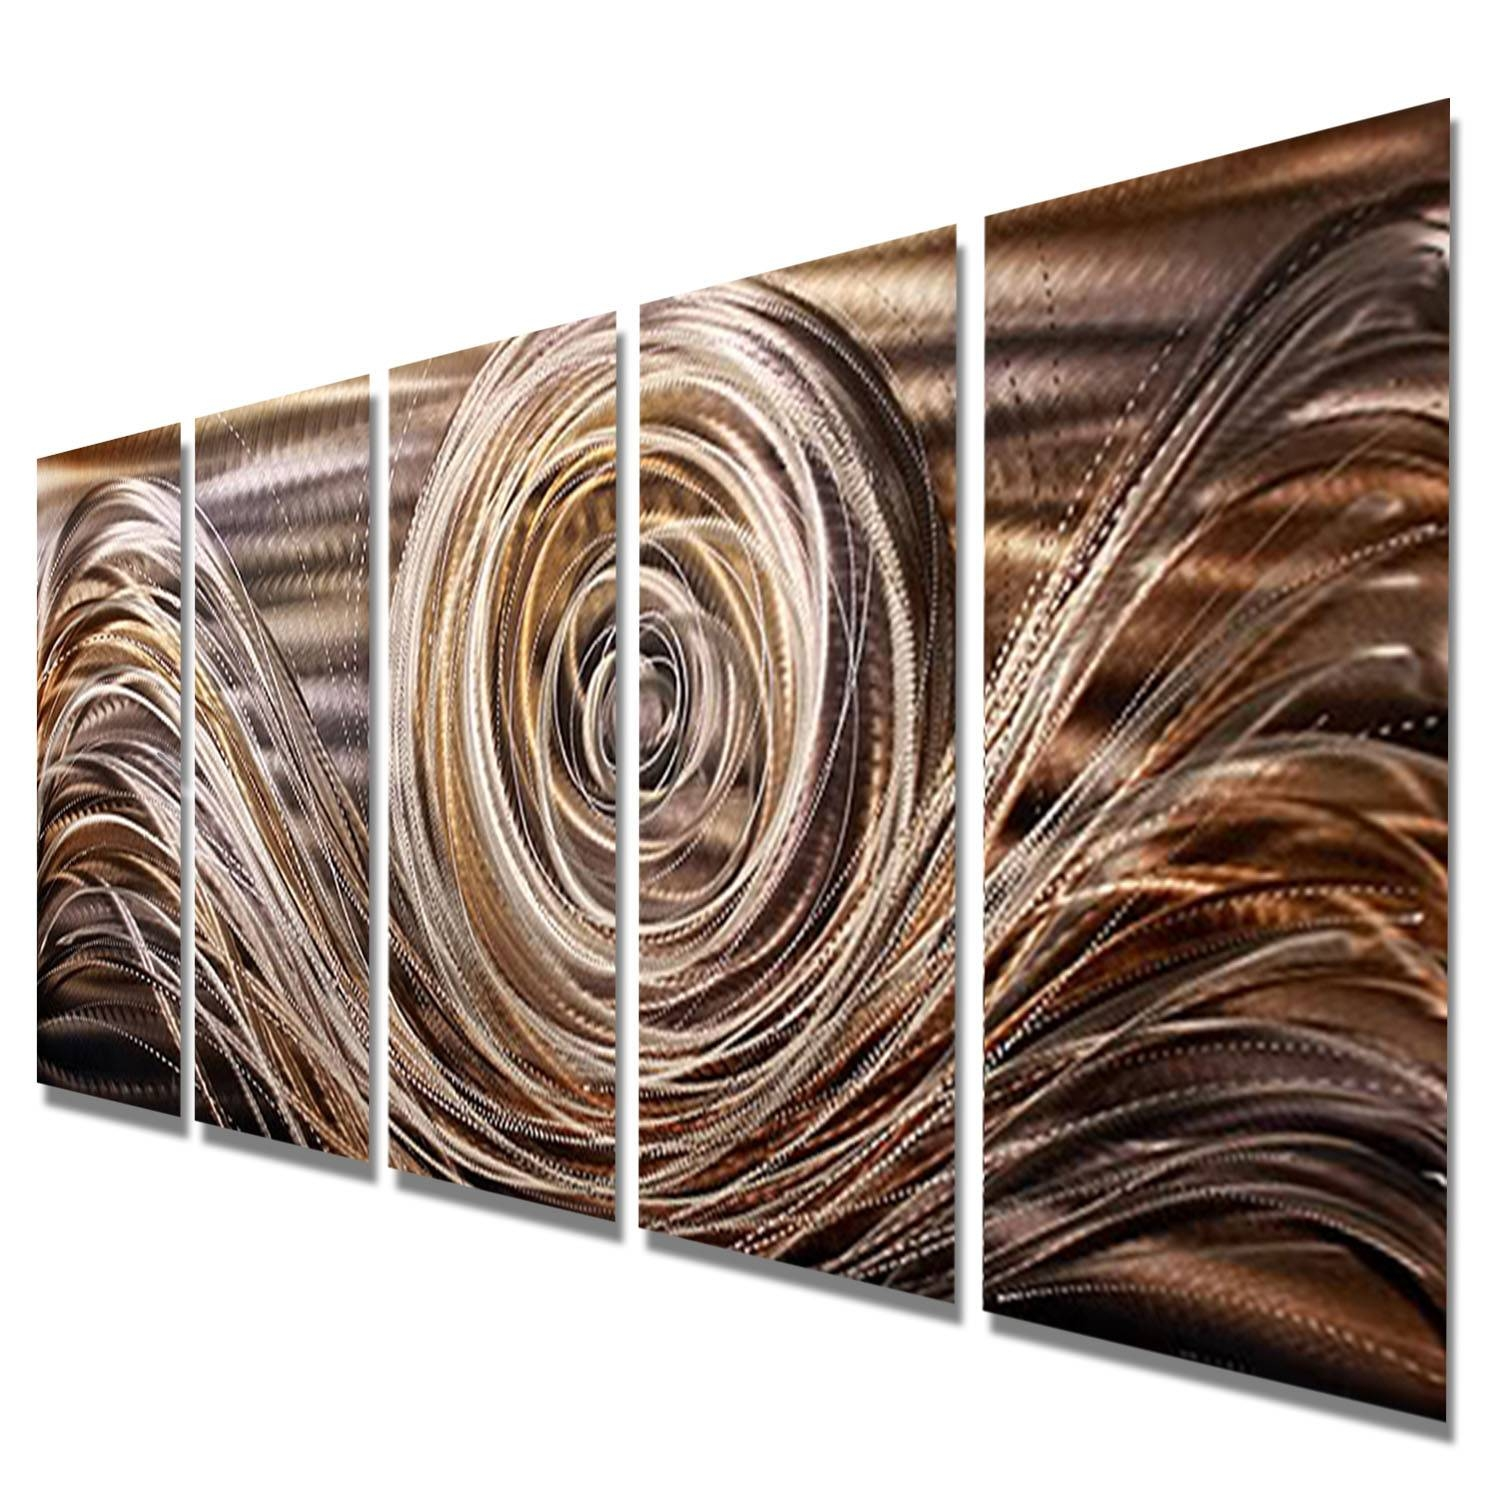 Mocha Swirl – Charcoal, Brown, Gold, And Silver Metal Wall Art – 5 For Newest Silver Metal Wall Art (View 8 of 20)